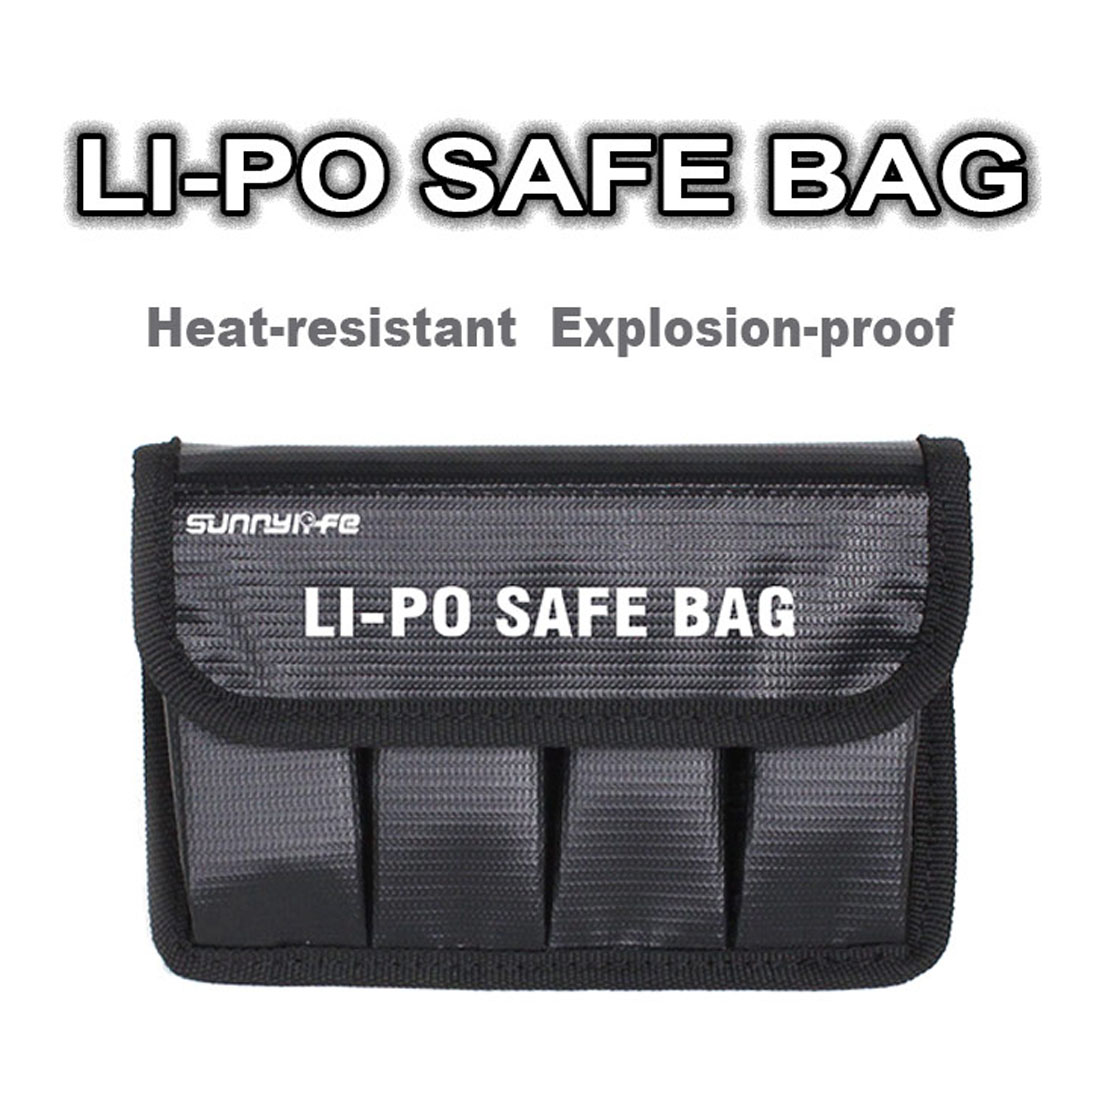 HOBBYINRC Lipo Battery Safe Bag Explosion proof Protective Battery Safety Guard Storage Bag for DJI OSMO OSMO Raw Pro